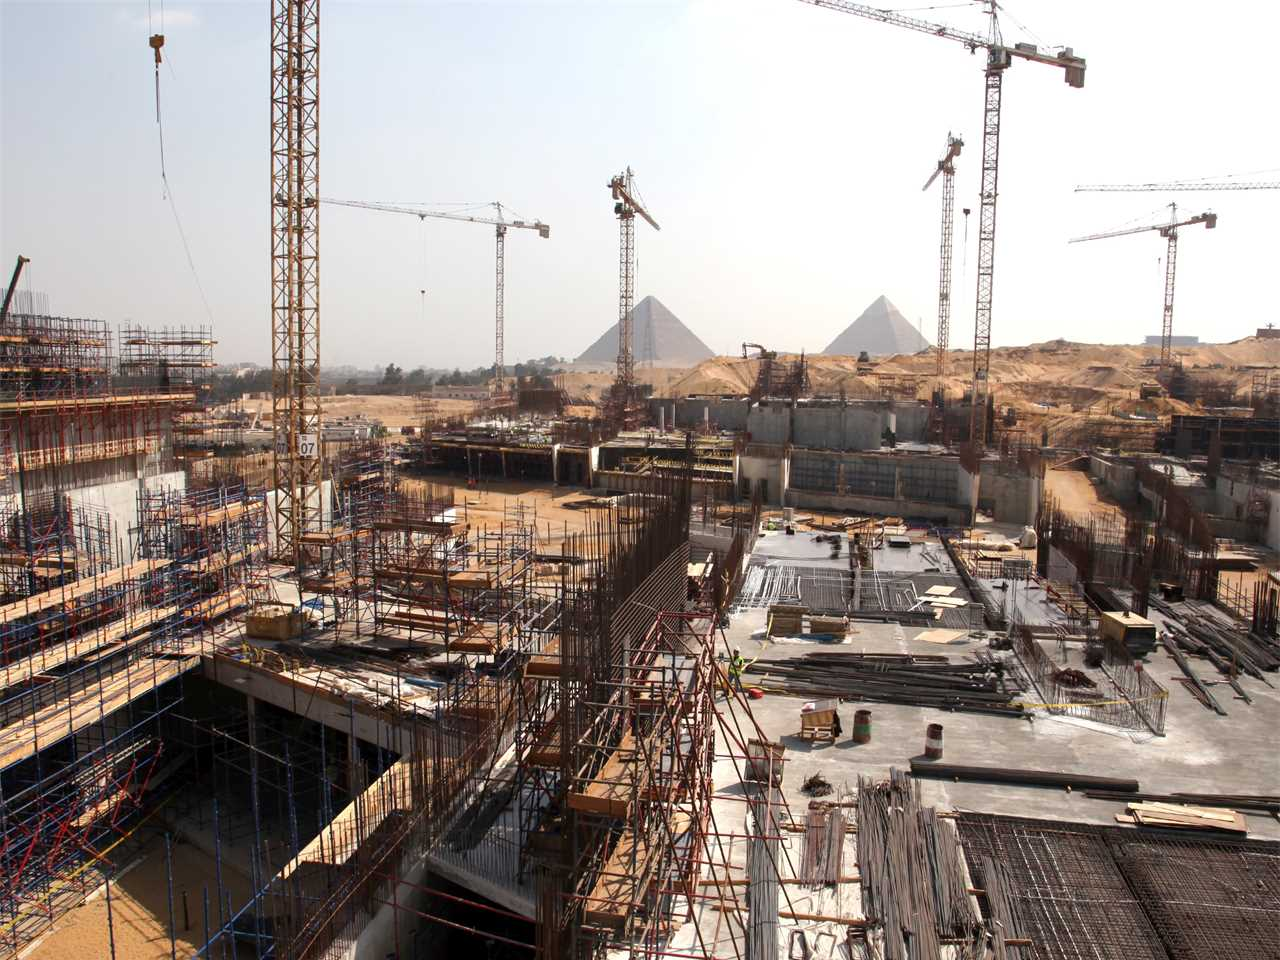 LafargeHolcim Forum for Sustainable Construction 2019 in Egypt